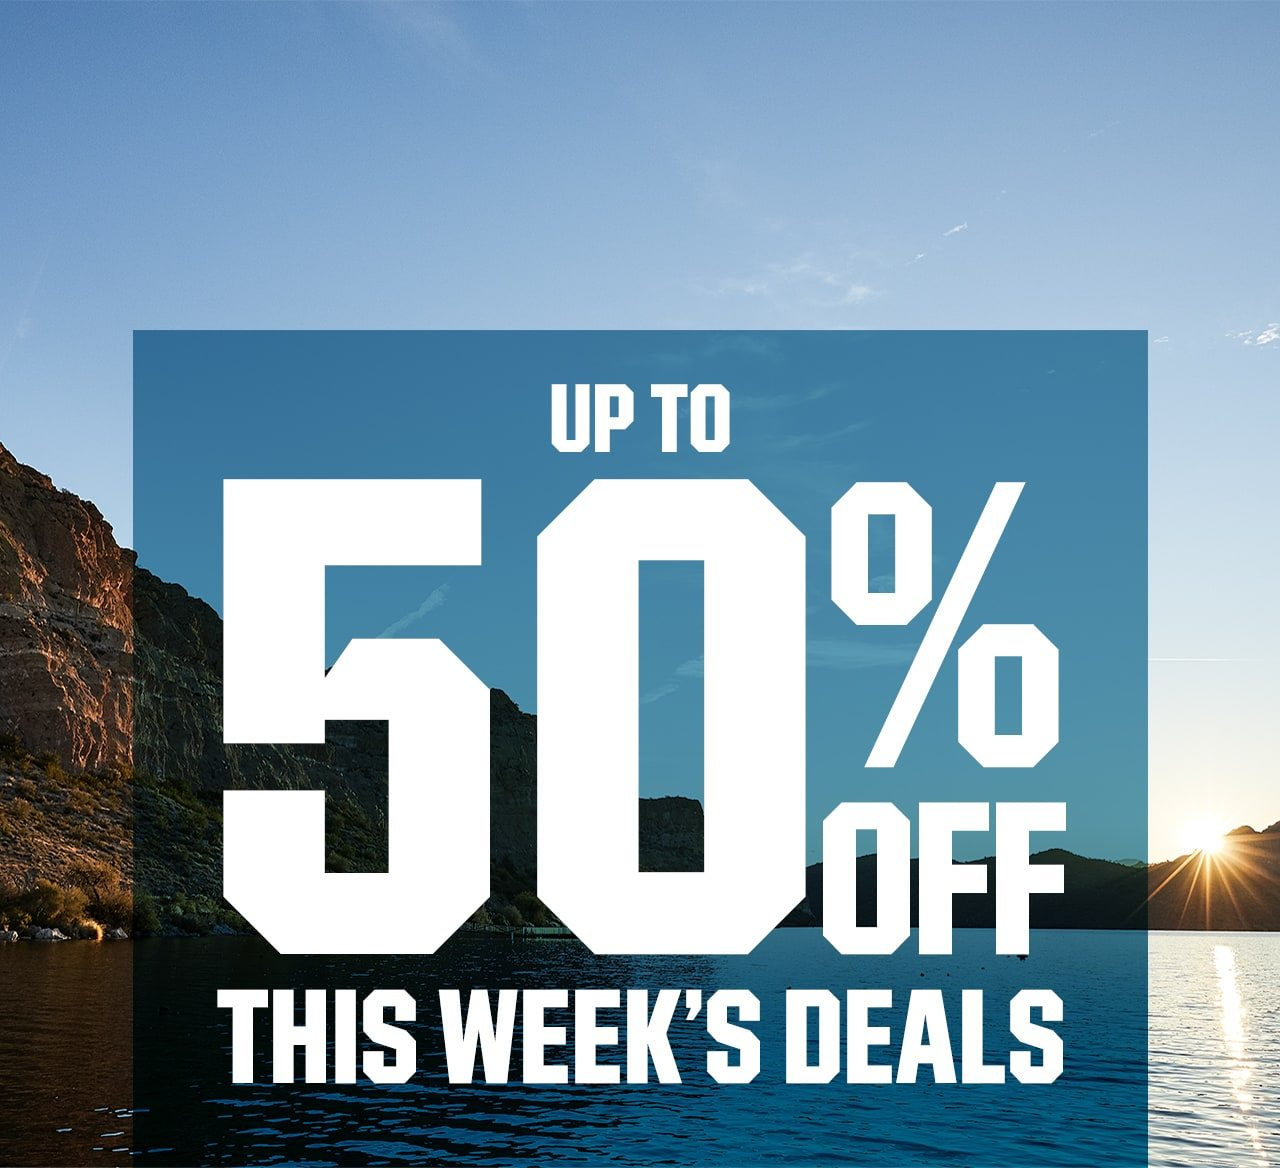 Up to 50% off this week's deals.